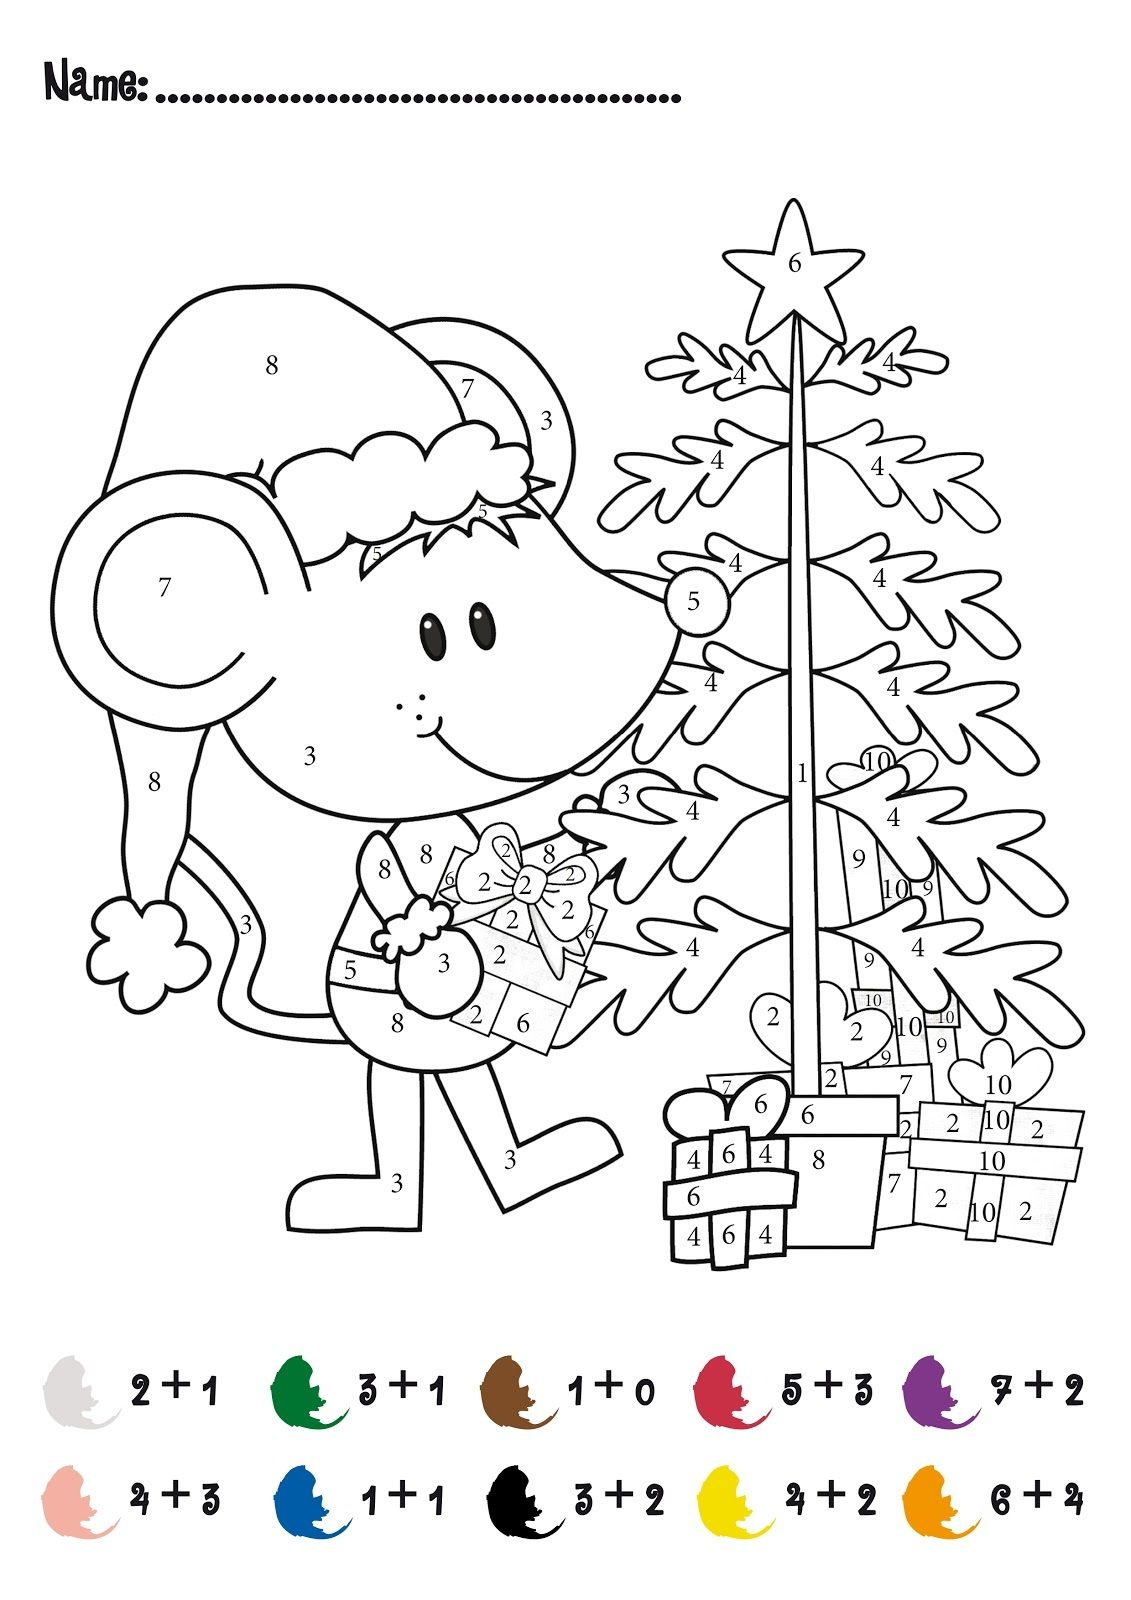 Uncategorized Free Christmas Math Worksheets First Grade fun math sheets for playful learning kiddo shelter find this pin and more on worksheets kids